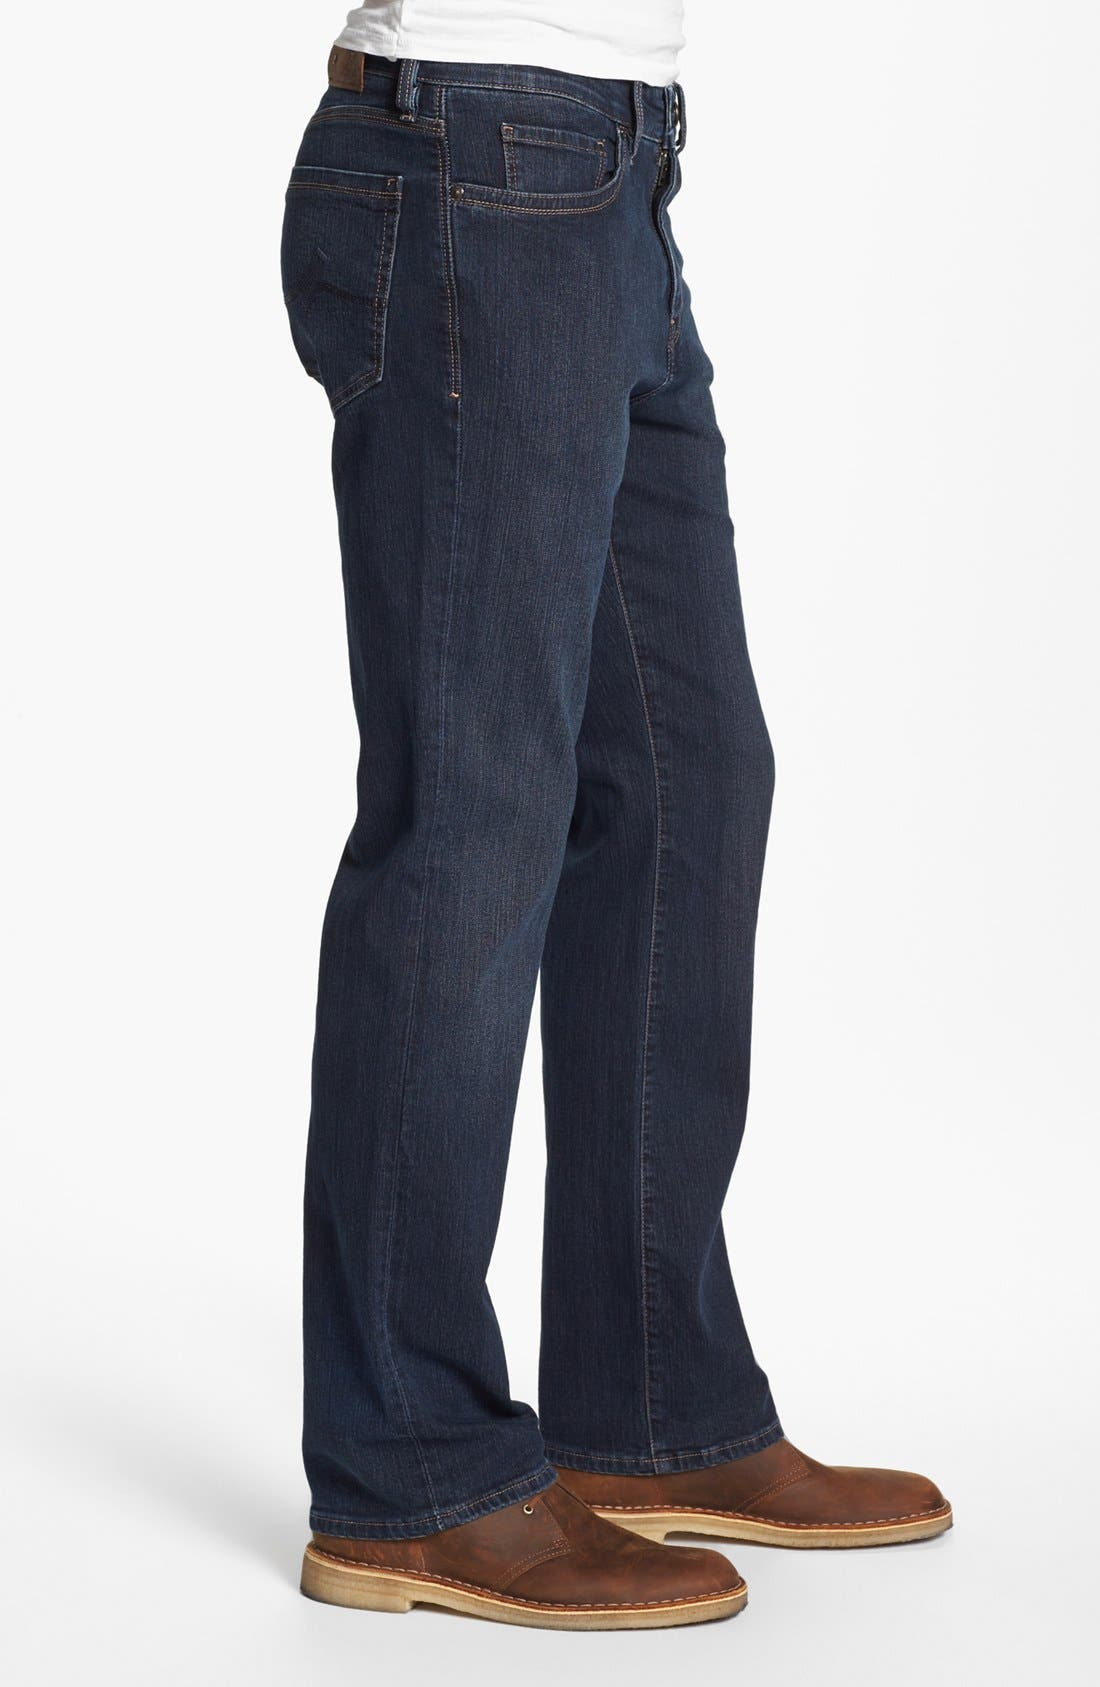 Charisma Relaxed Fit Jeans,                             Alternate thumbnail 4, color,                             DARK COMFORT